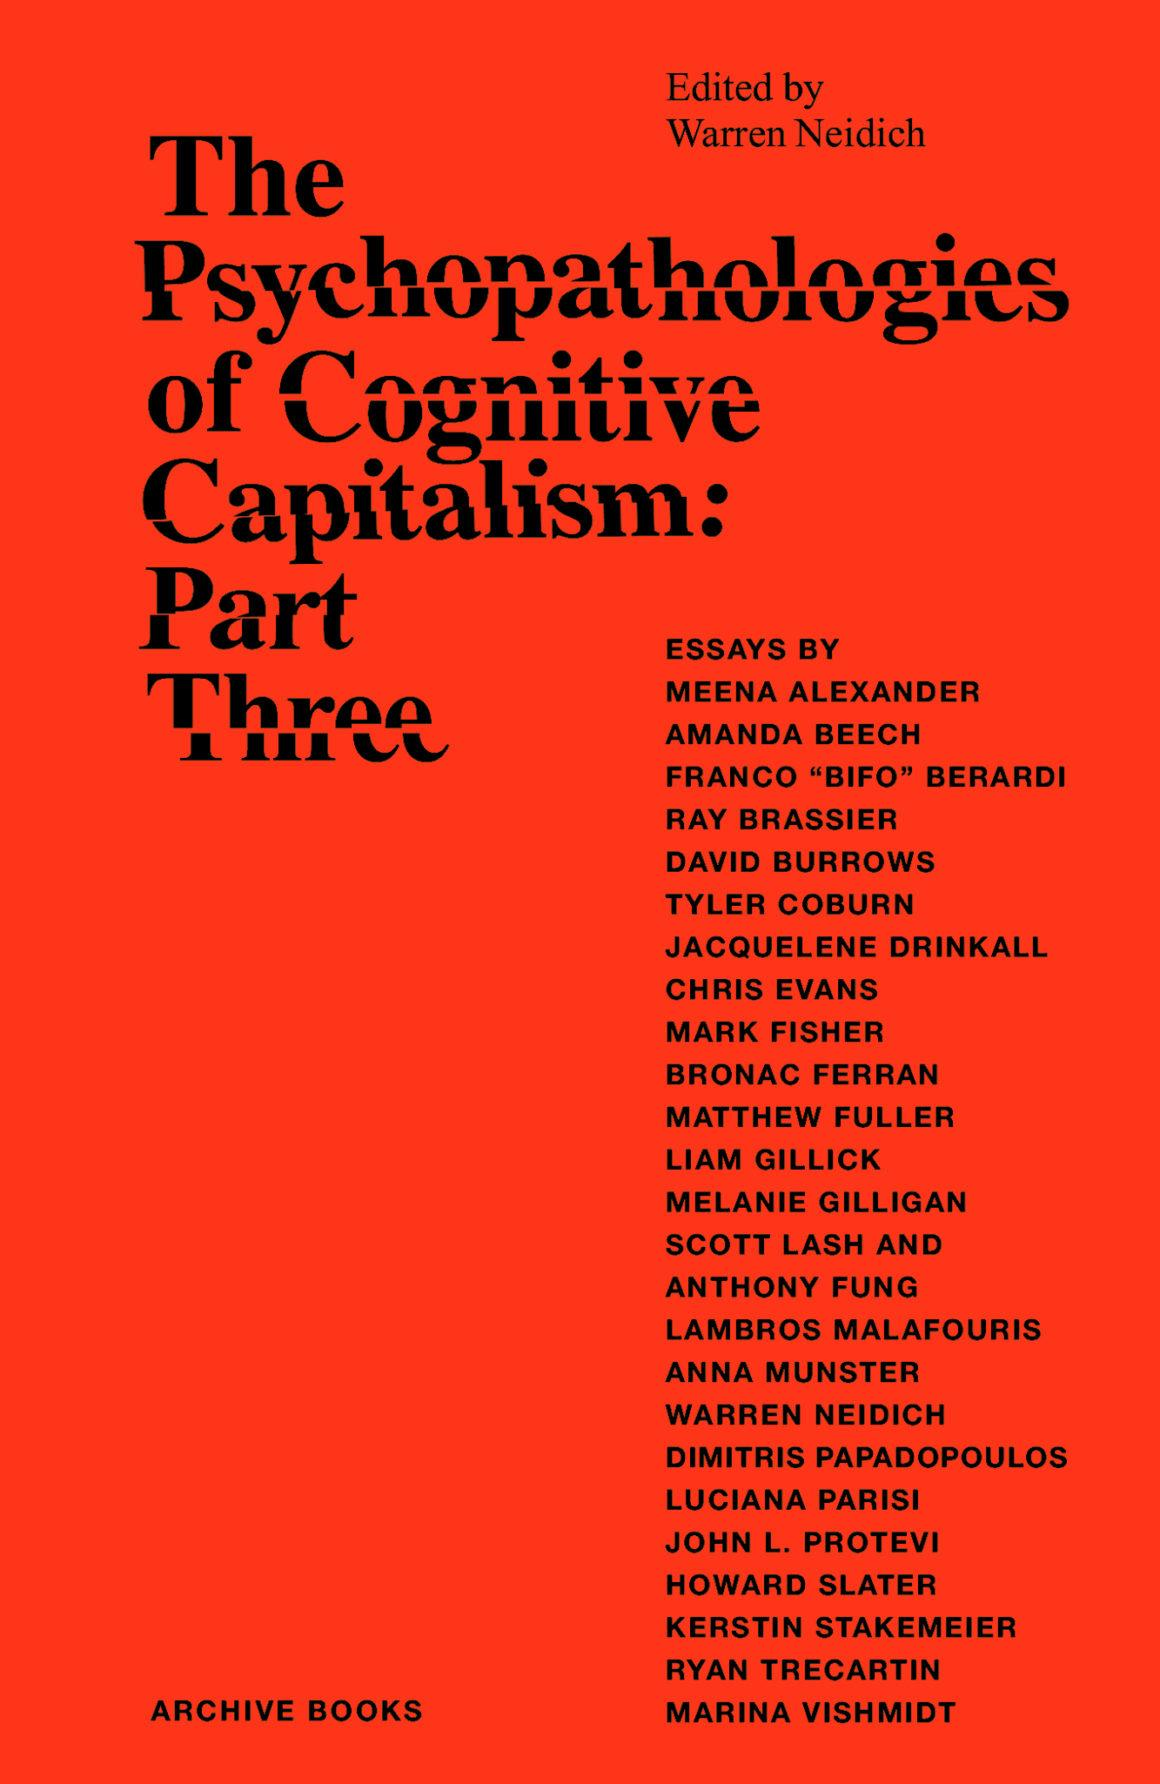 The Psychopathologies of Cognitive Capitalism. Part Three